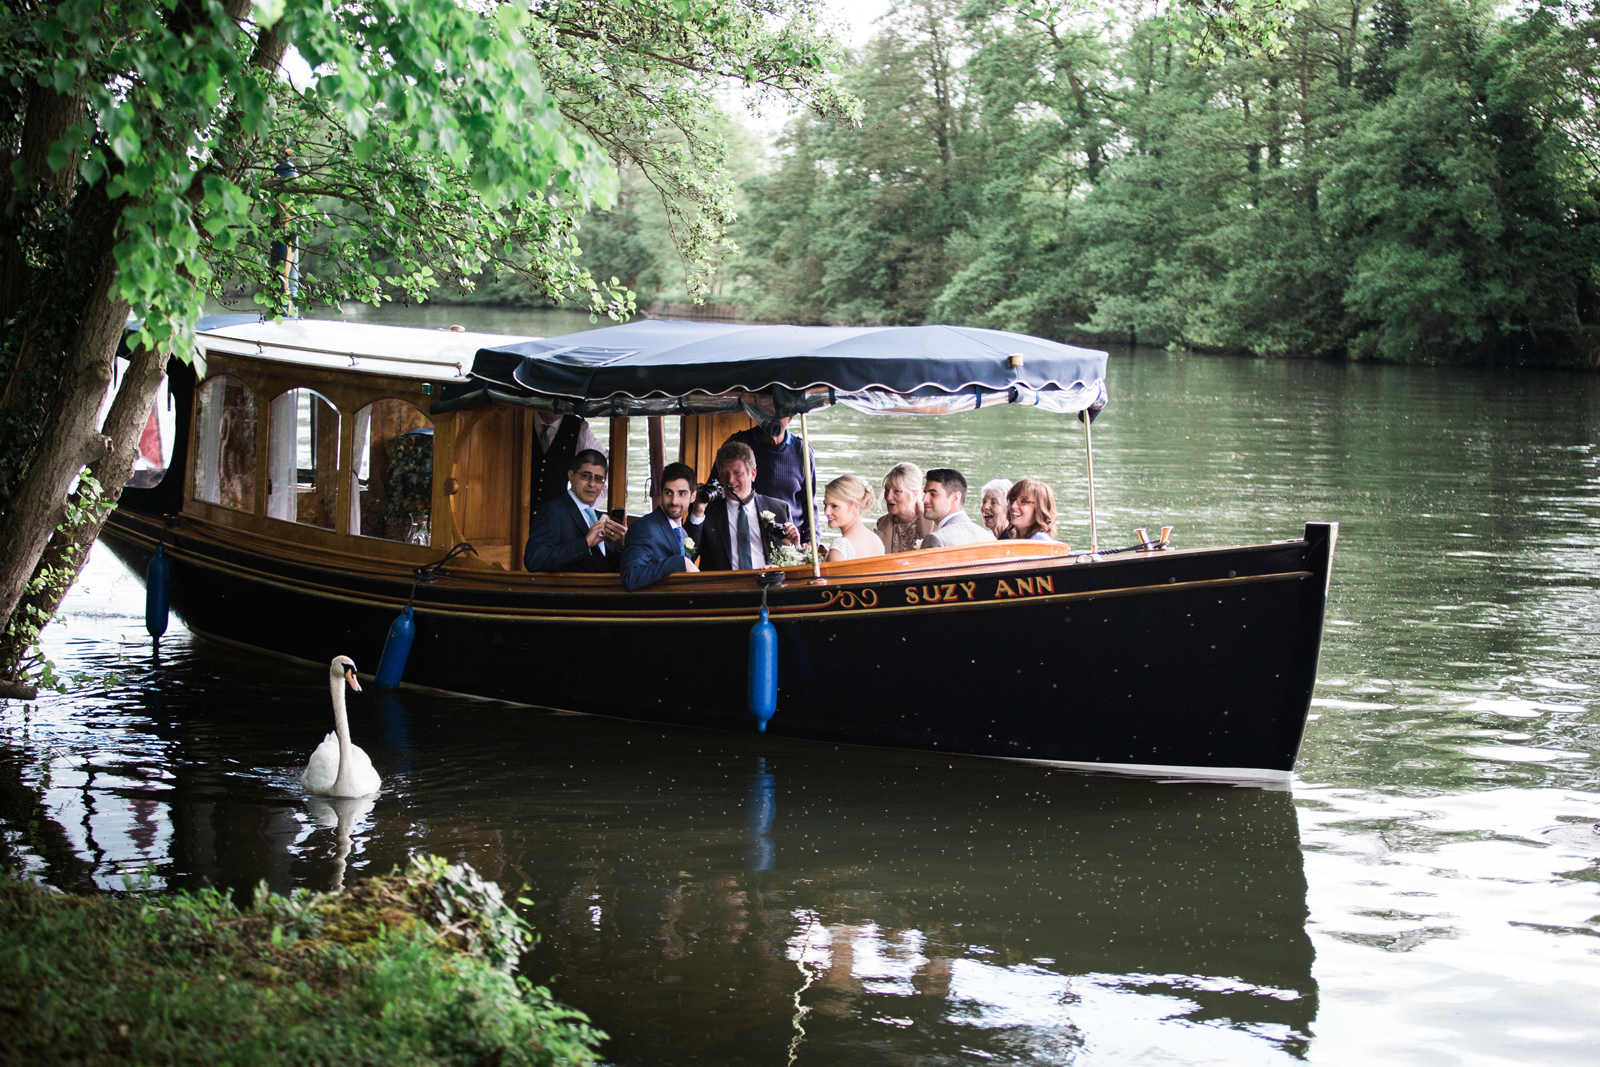 Wedding boat trip and swan - Cliveden